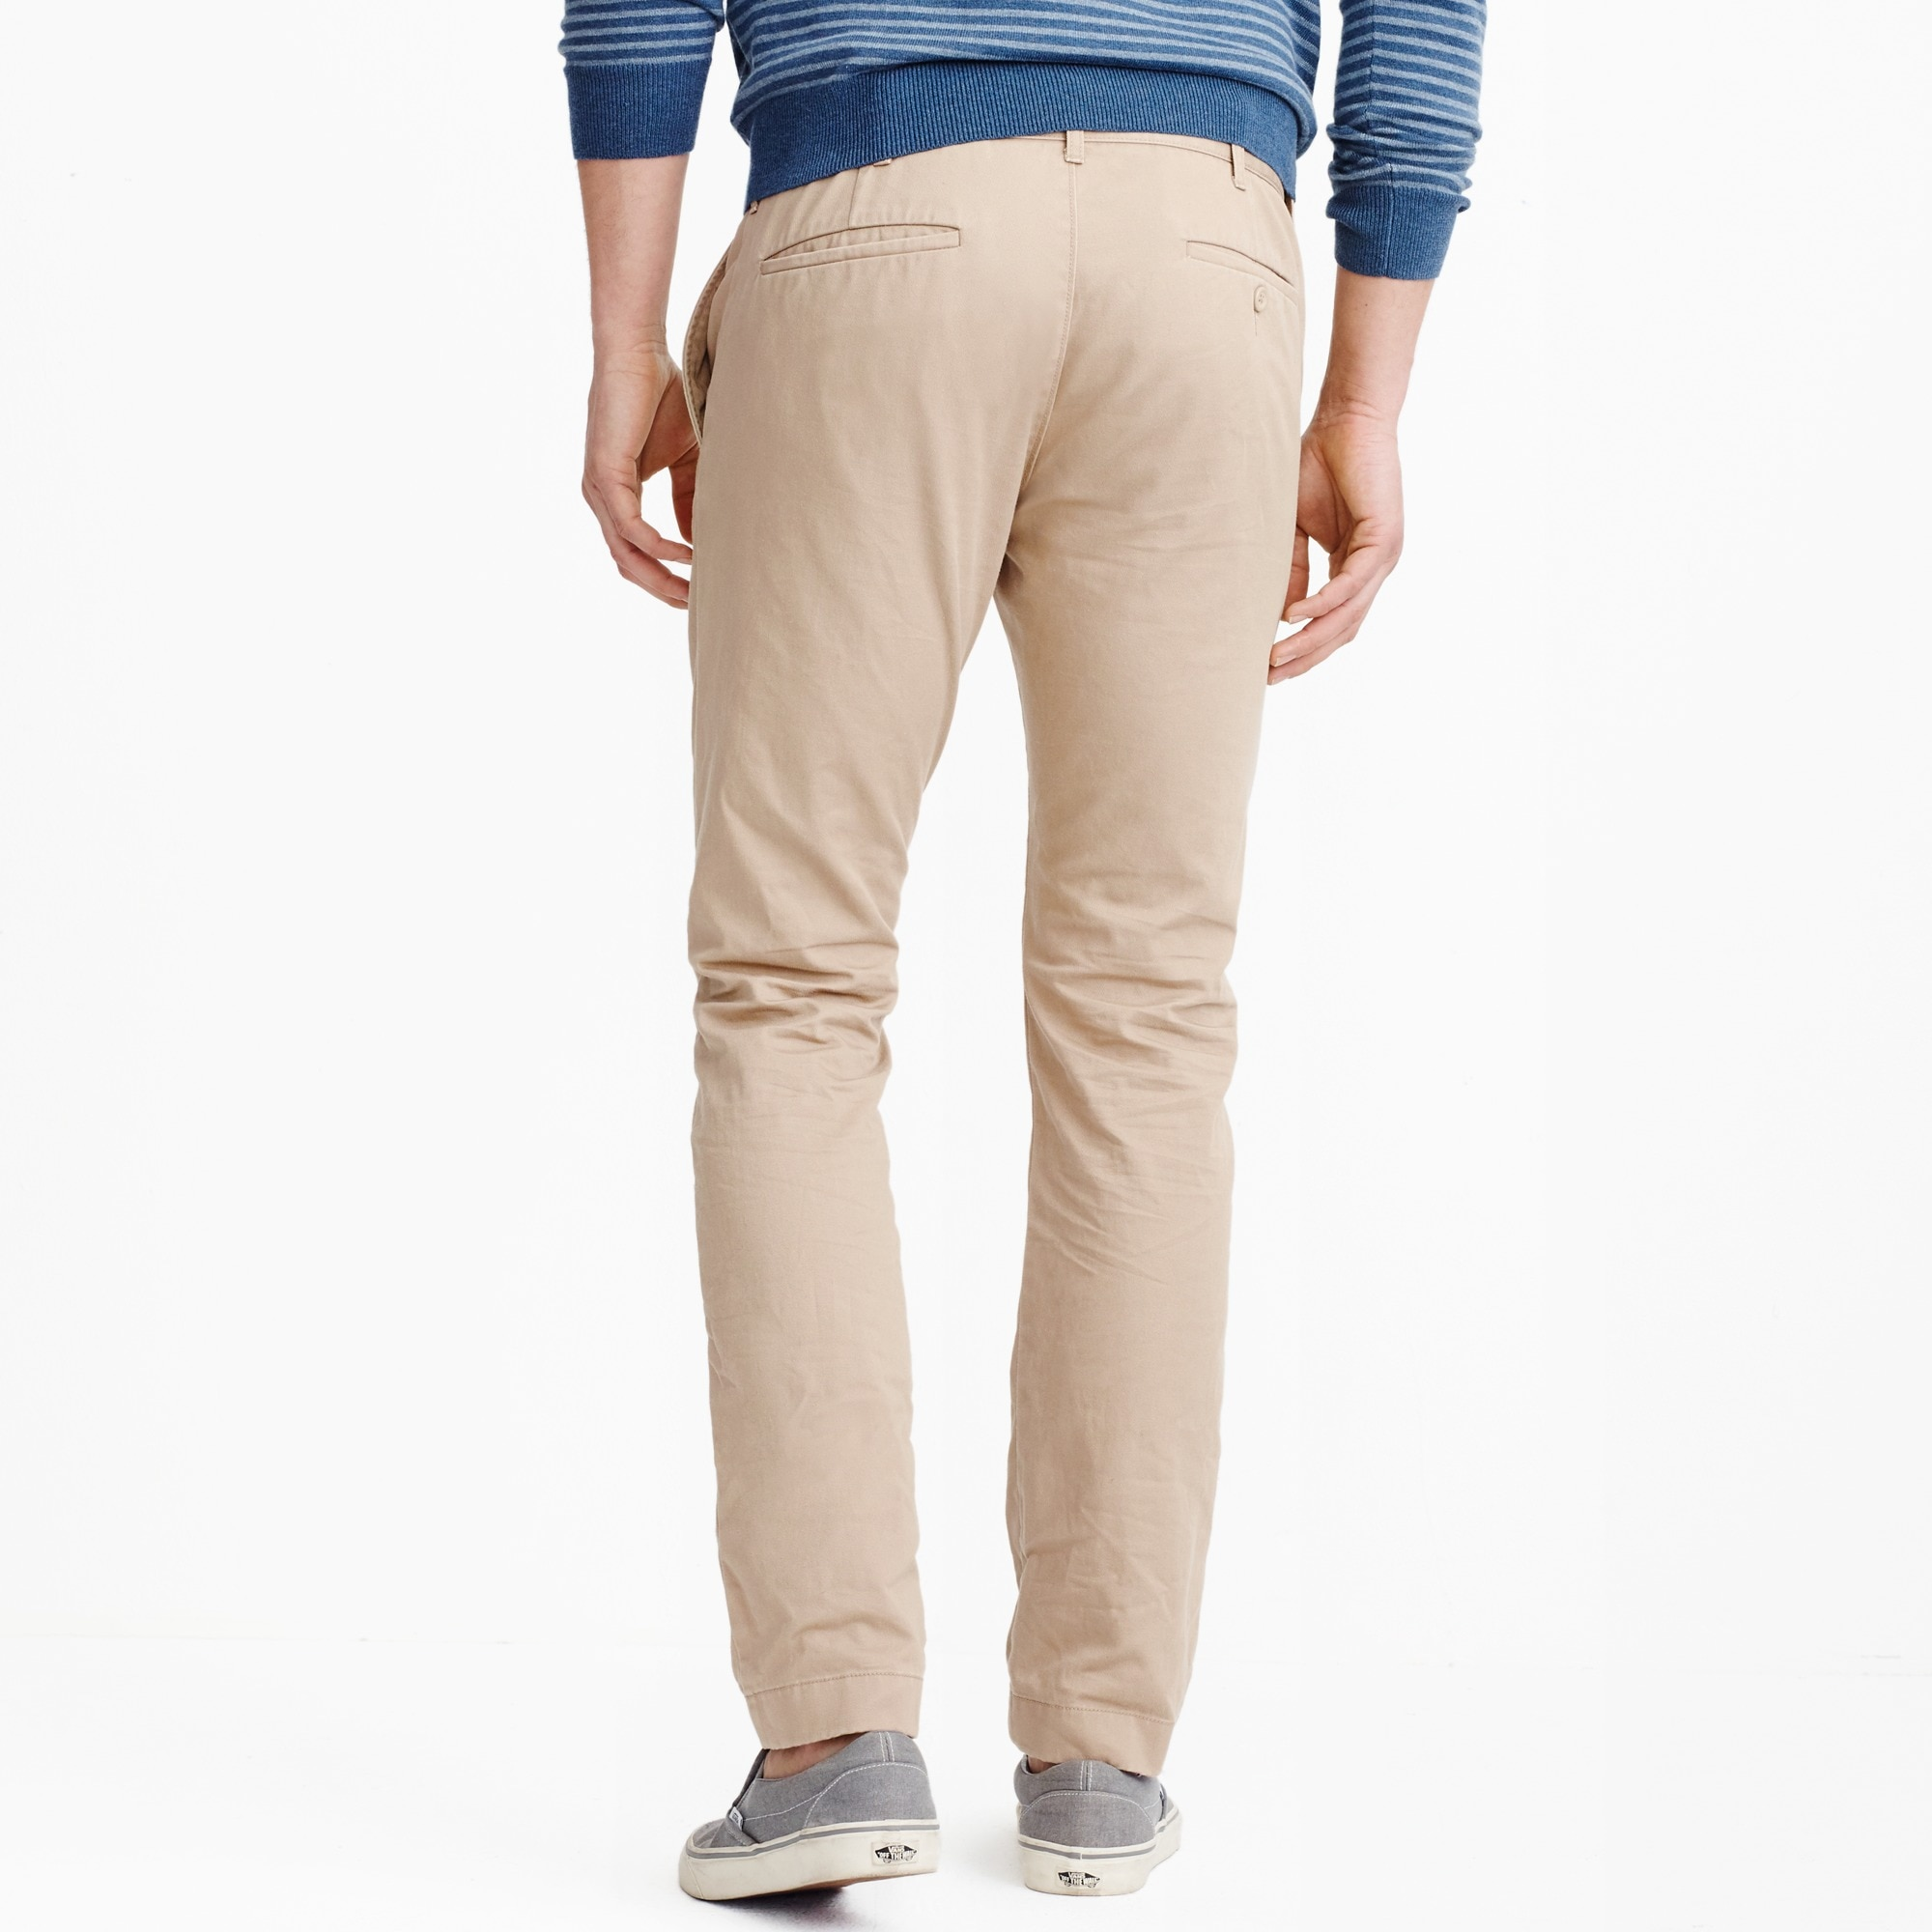 Image 4 for Slim-fit broken-in chino